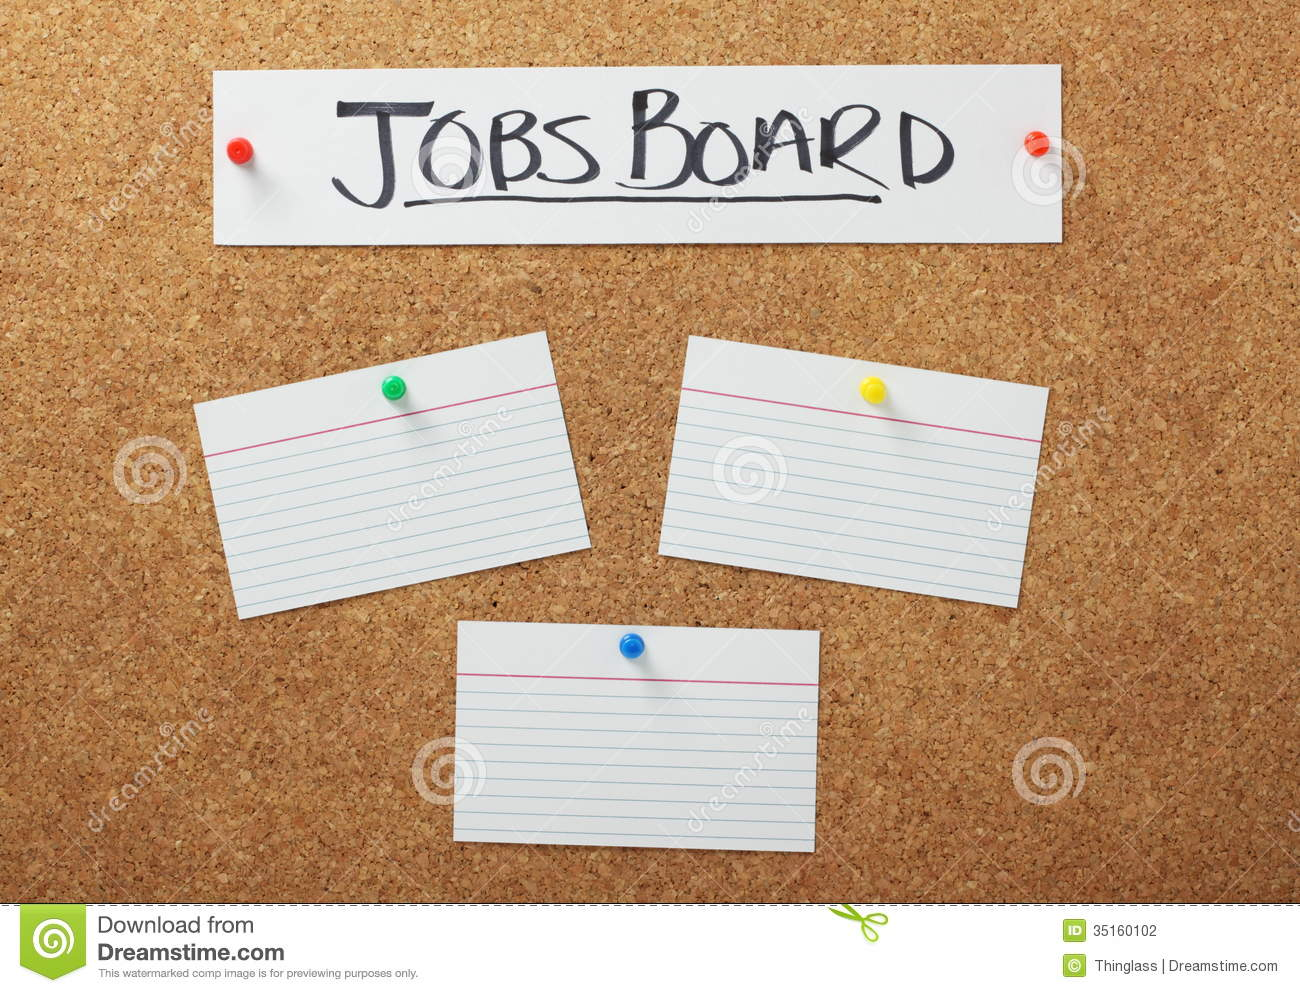 Jobs Board Stock Photography - Image: 35160102